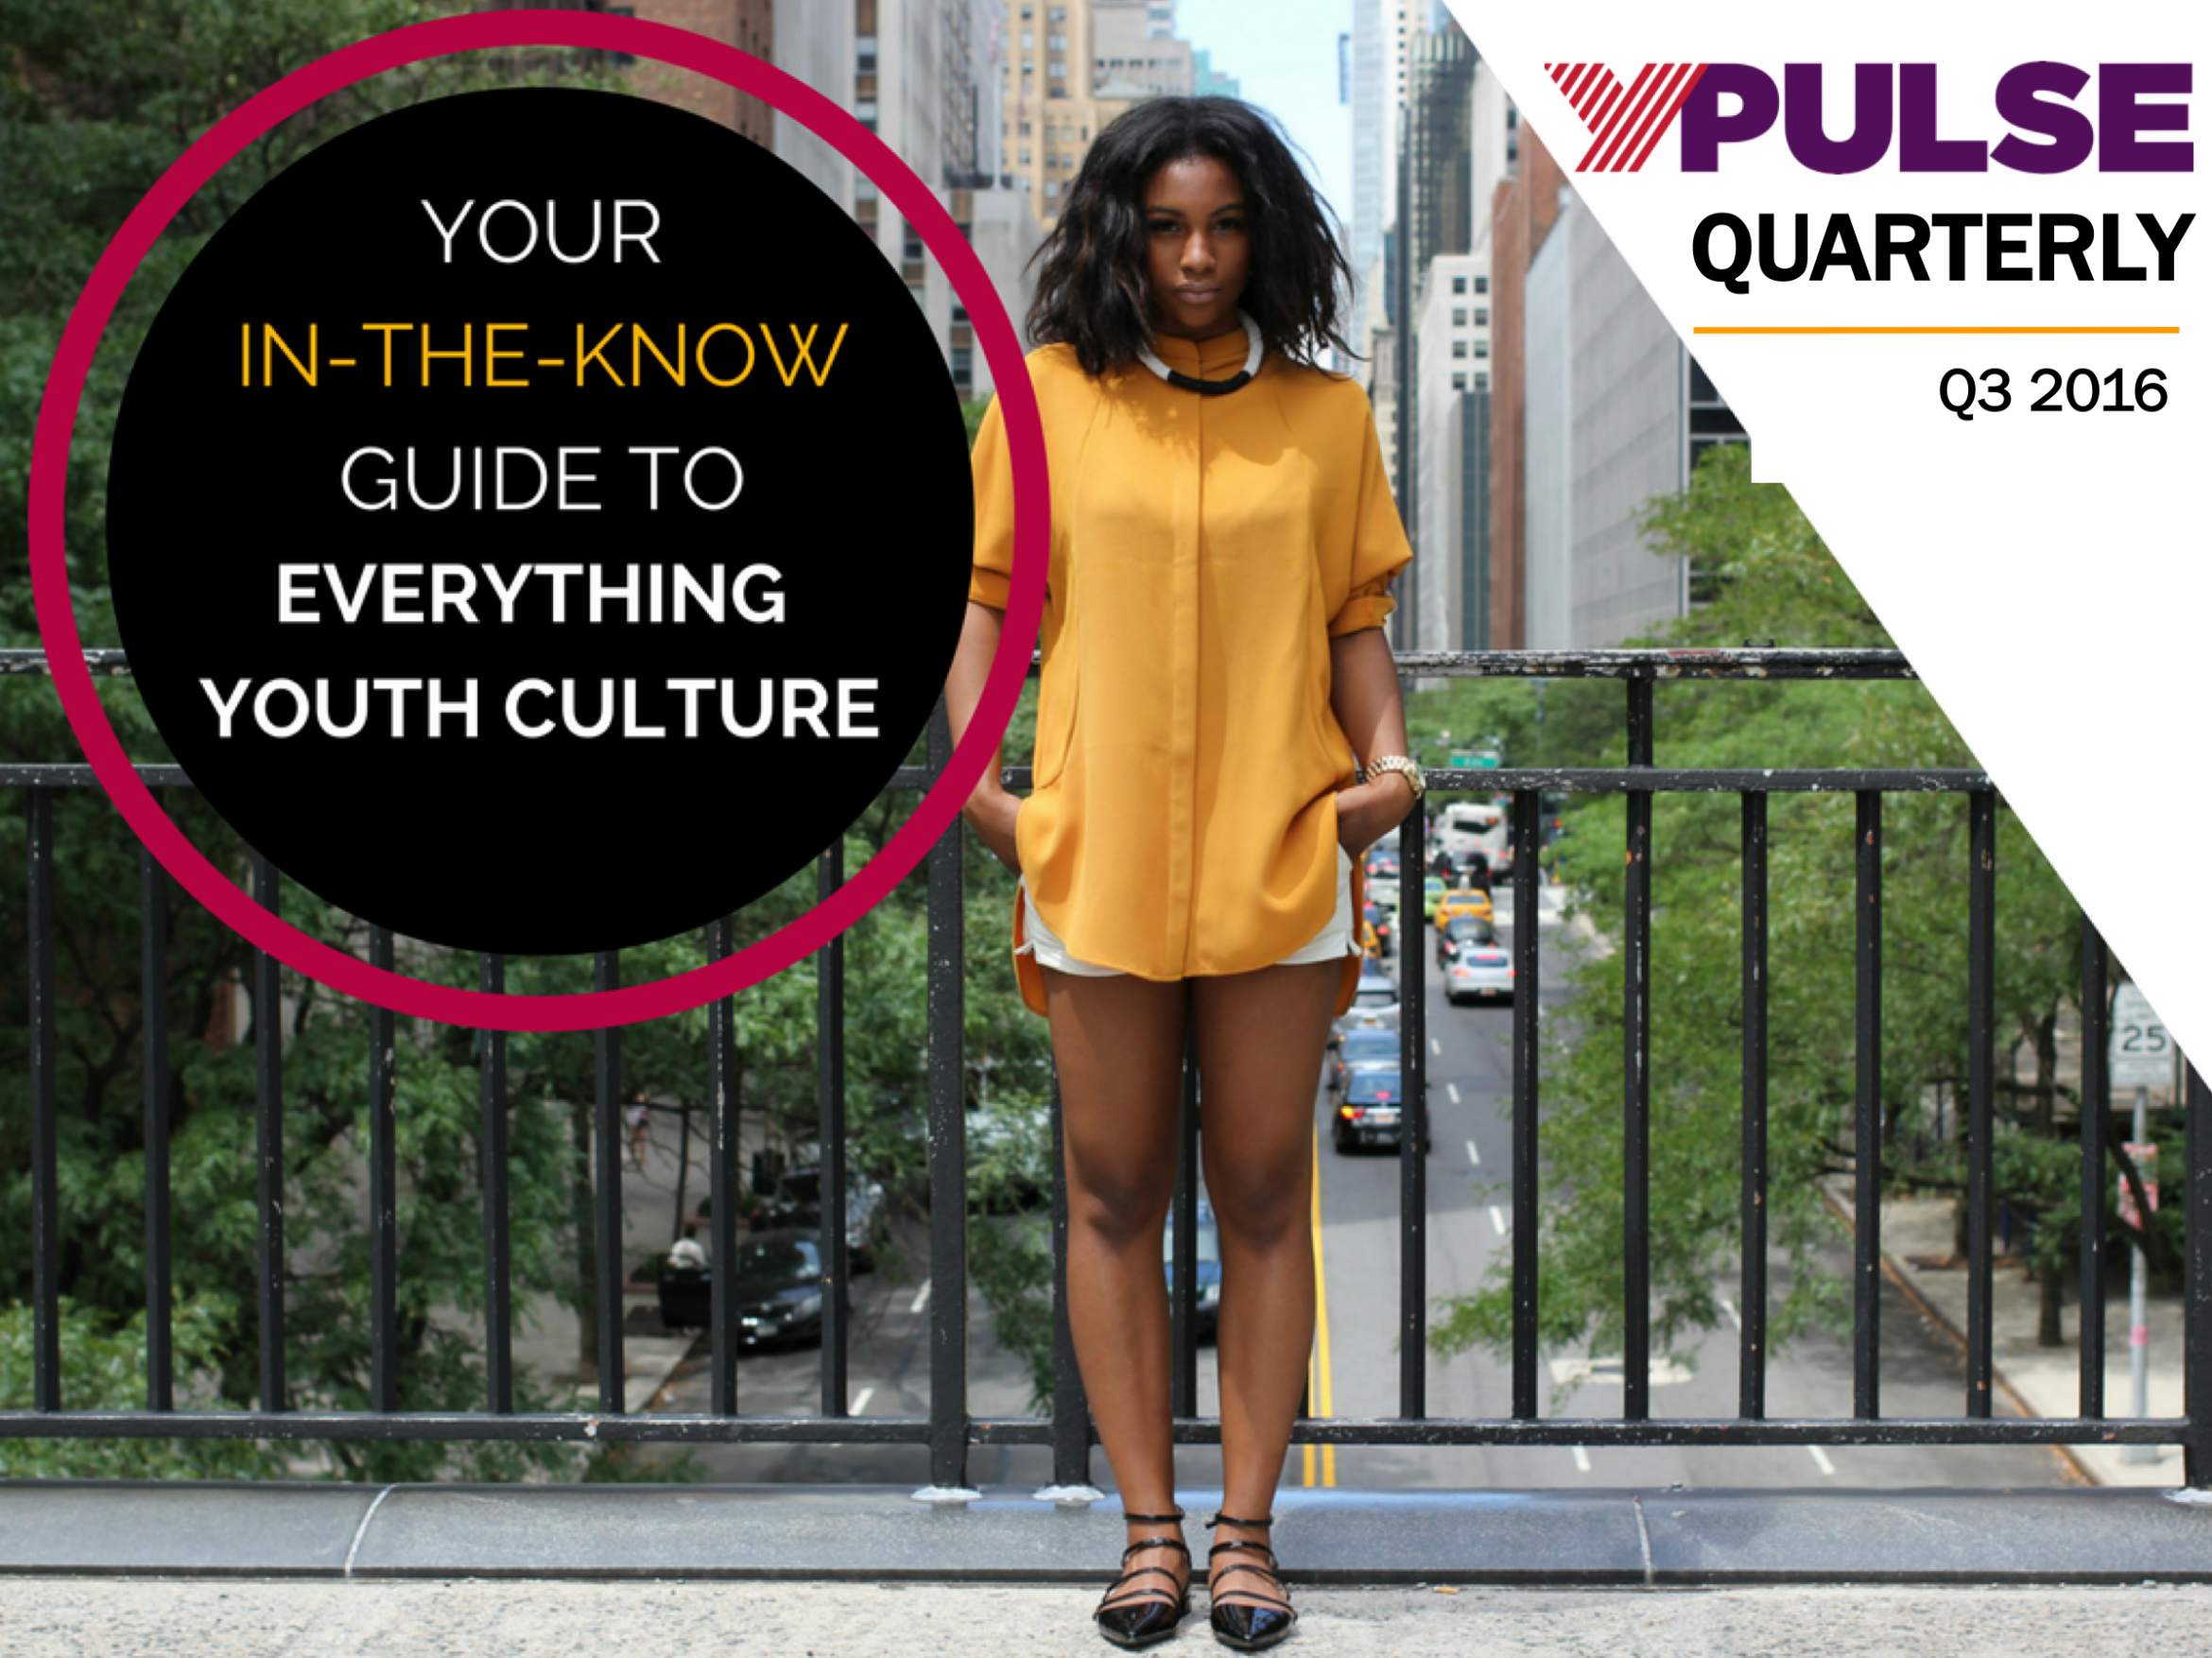 Q3 2016 YPulse Trend Report: The Diversity Tipping Point, Experiencification, Adulting